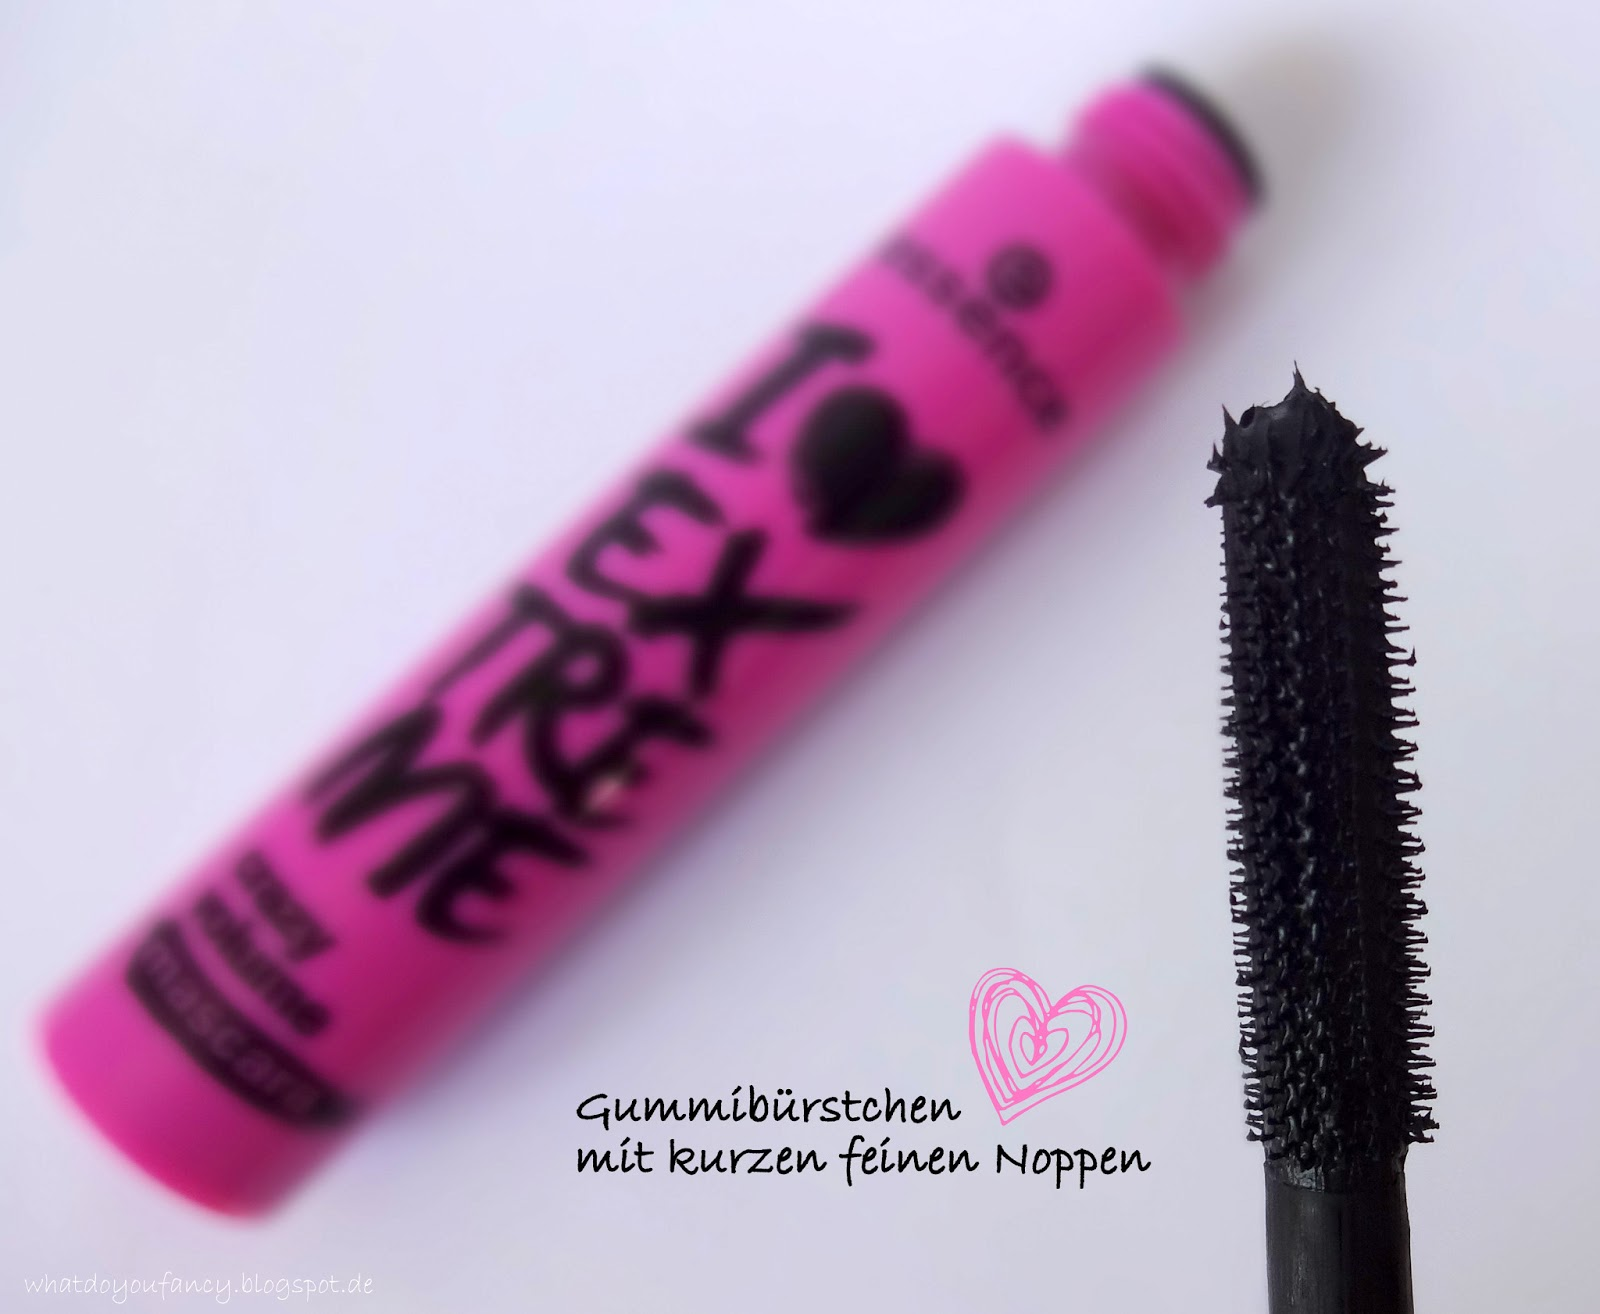 Essence I Love Extreme Mascara versus Essence I Love Extreme Crazy Volume Mascara